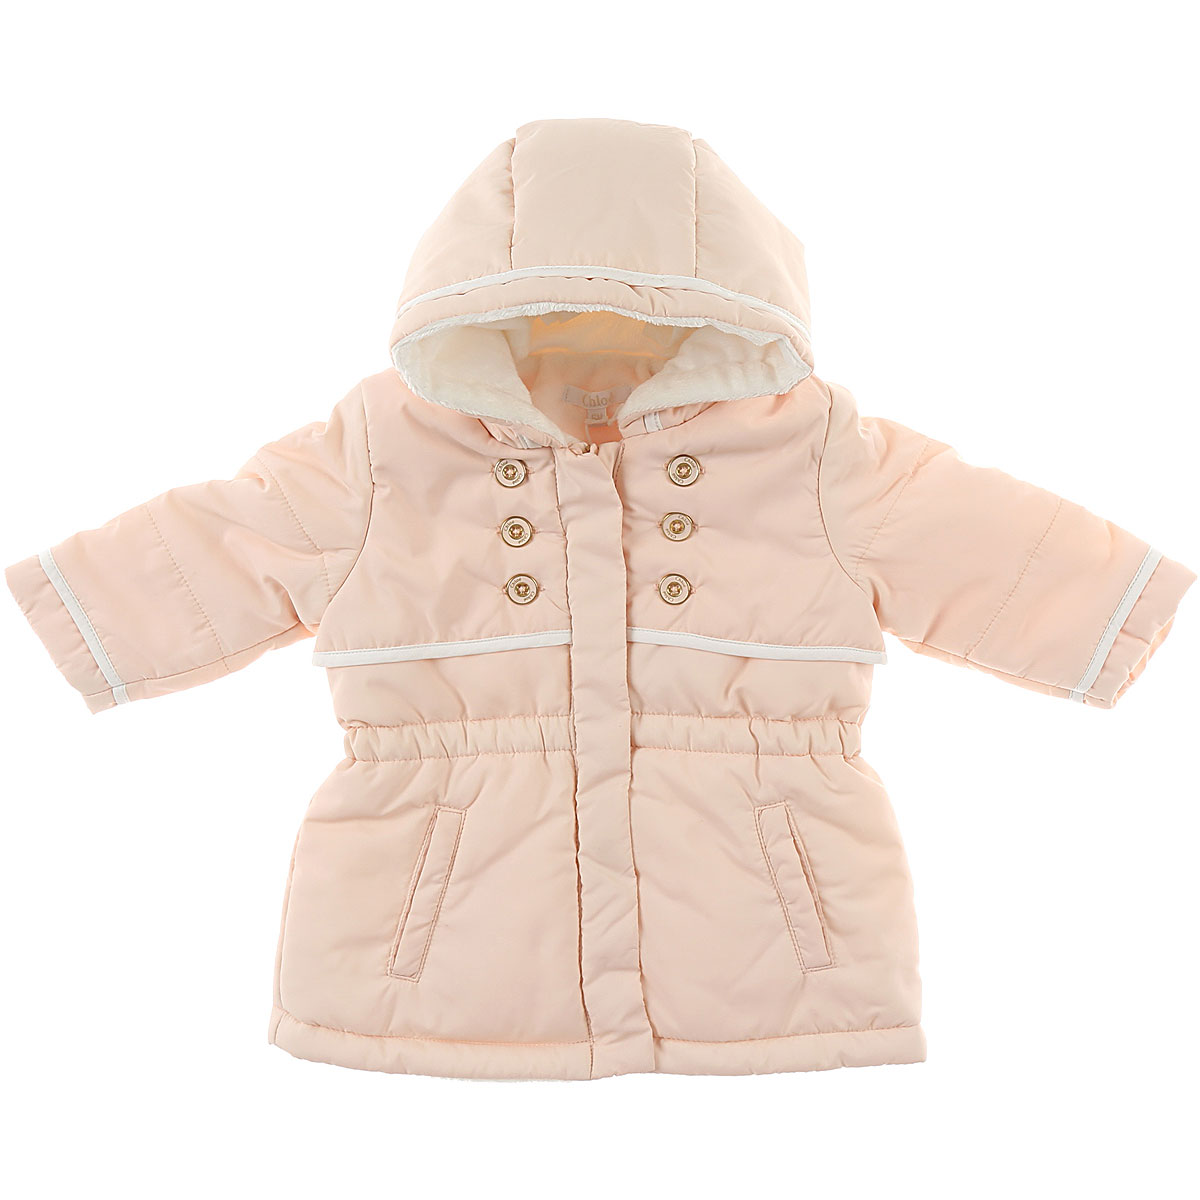 Image of Chloe Baby Jacket for Girls, Pink, polyester, 2017, 12M 18M 2Y 3Y 6M 9M